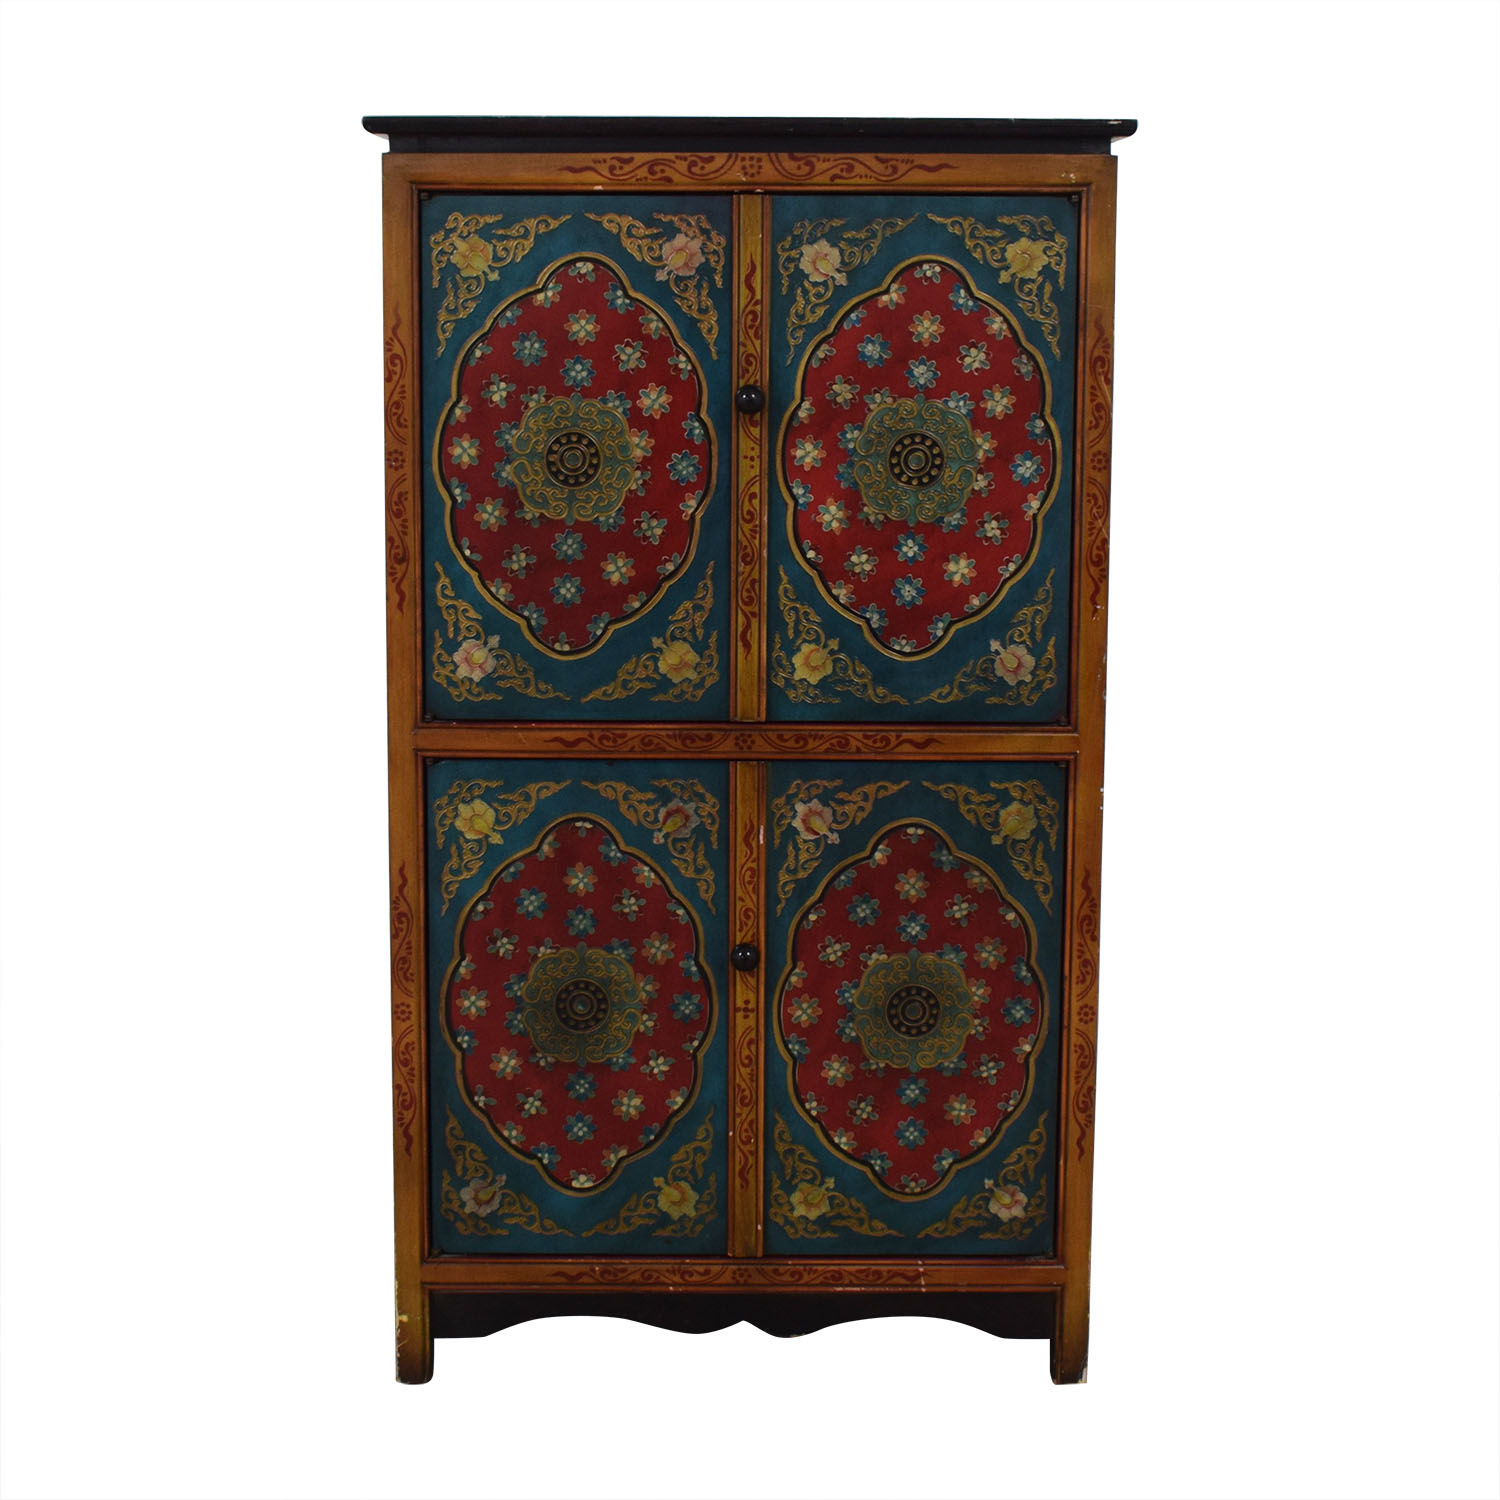 Pier 1 Pier 1 Decorative Wine Cabinet multi color